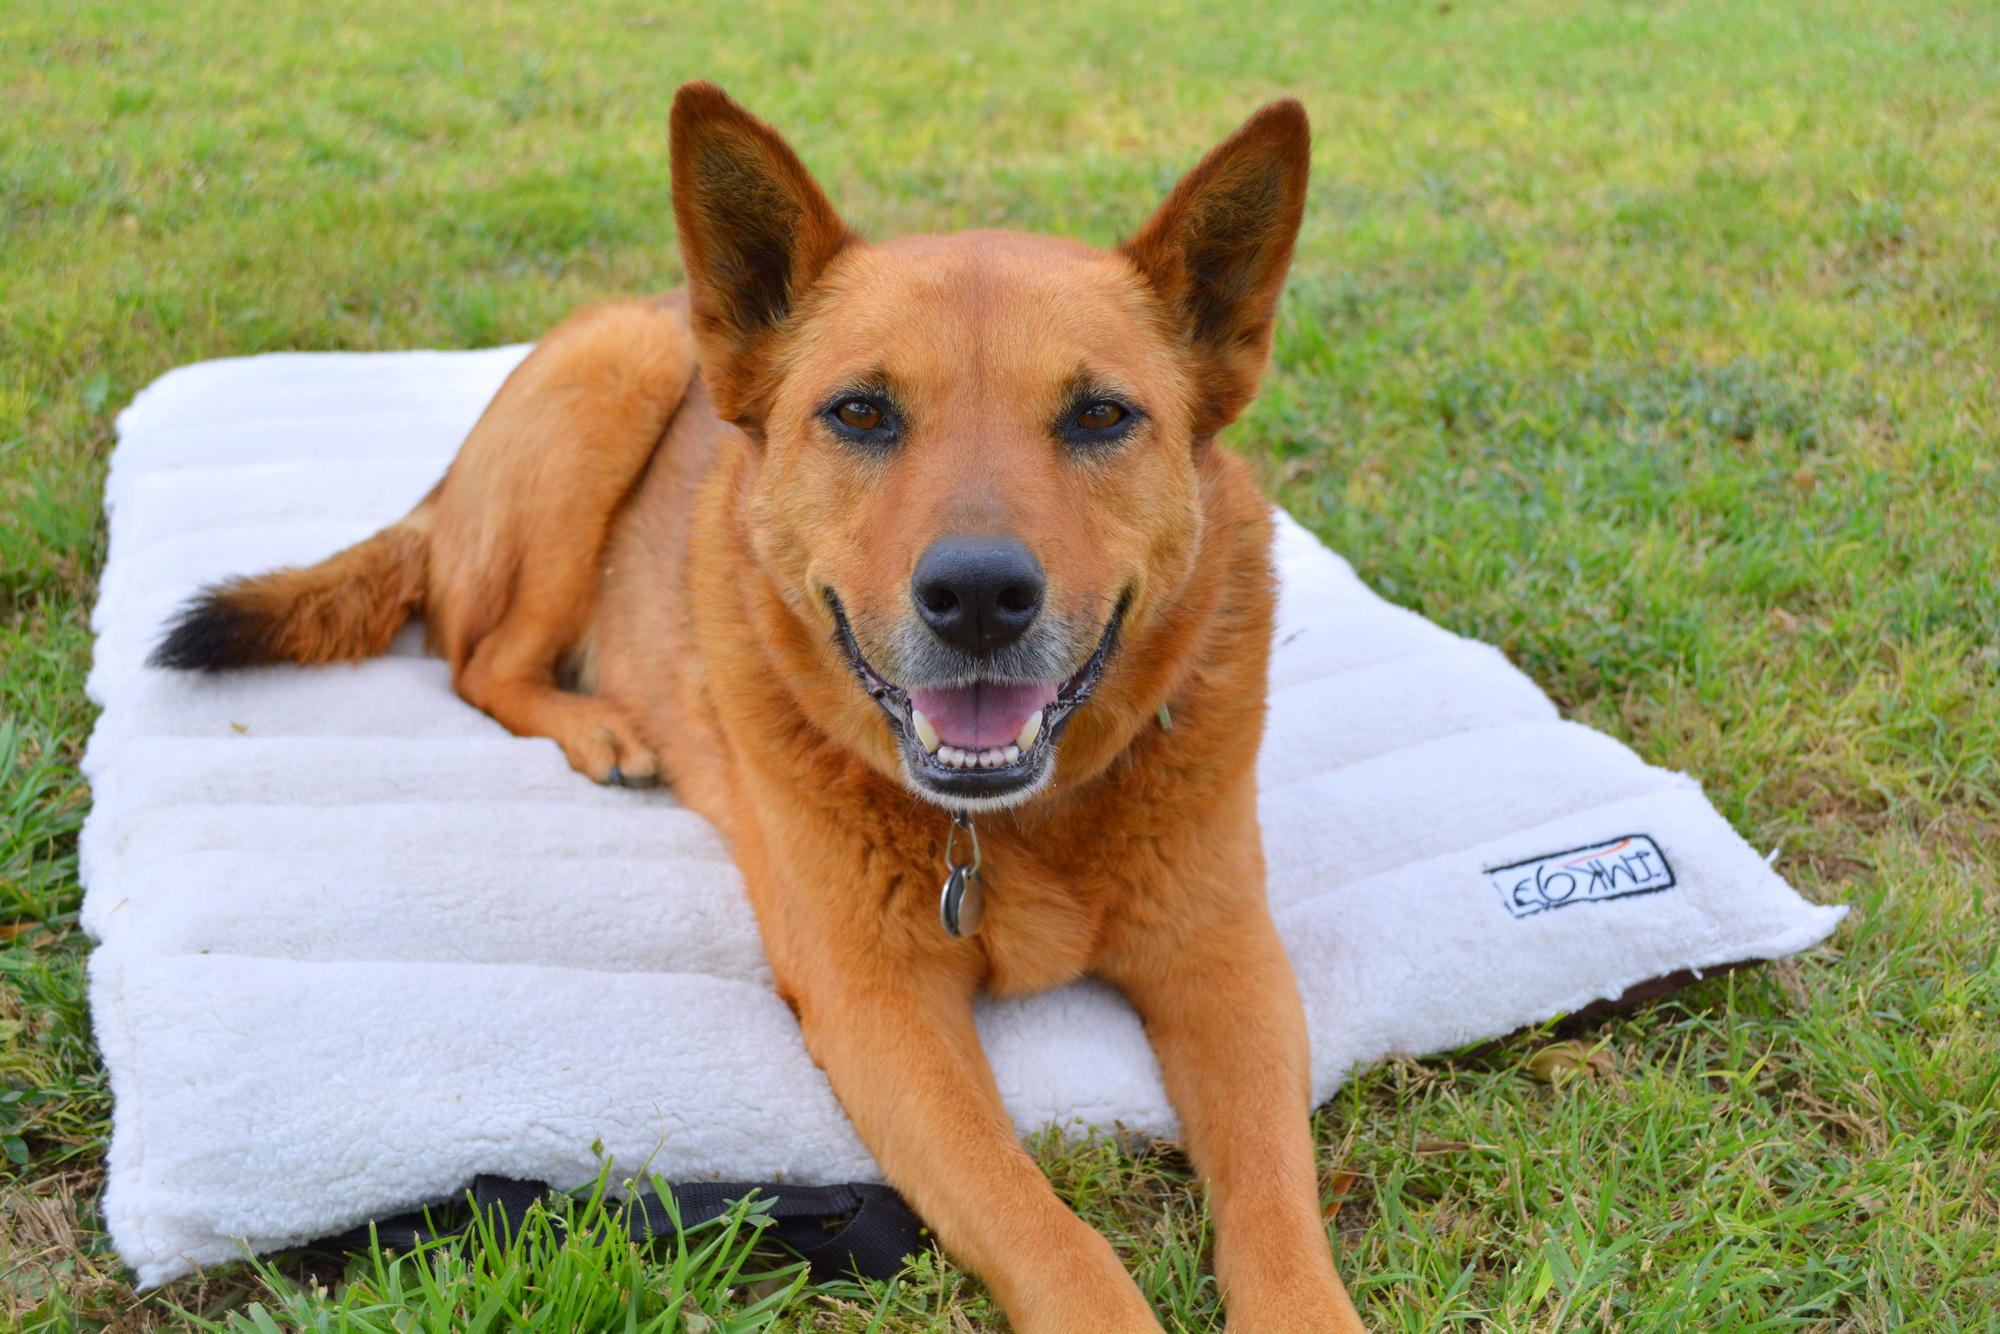 Imk9 Travel Dog Bed Review Amp Giveaway Dusty Desert Dogs